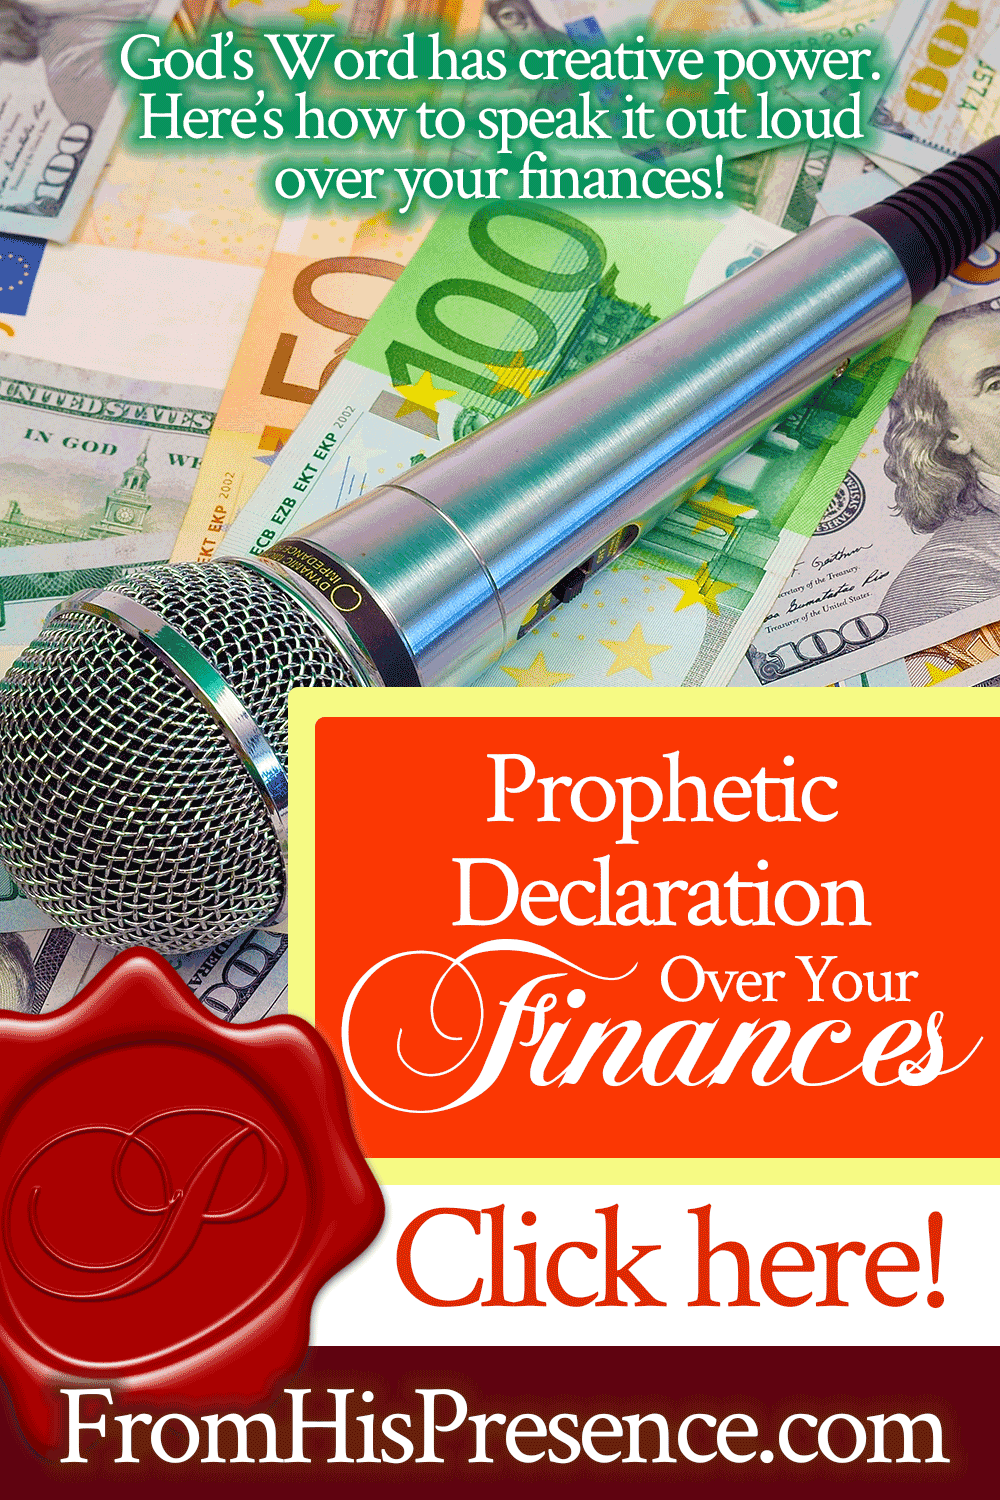 Prophetic Declaration Over Your Finances | by Jamie Rohrbaugh | FromHisPresence.com